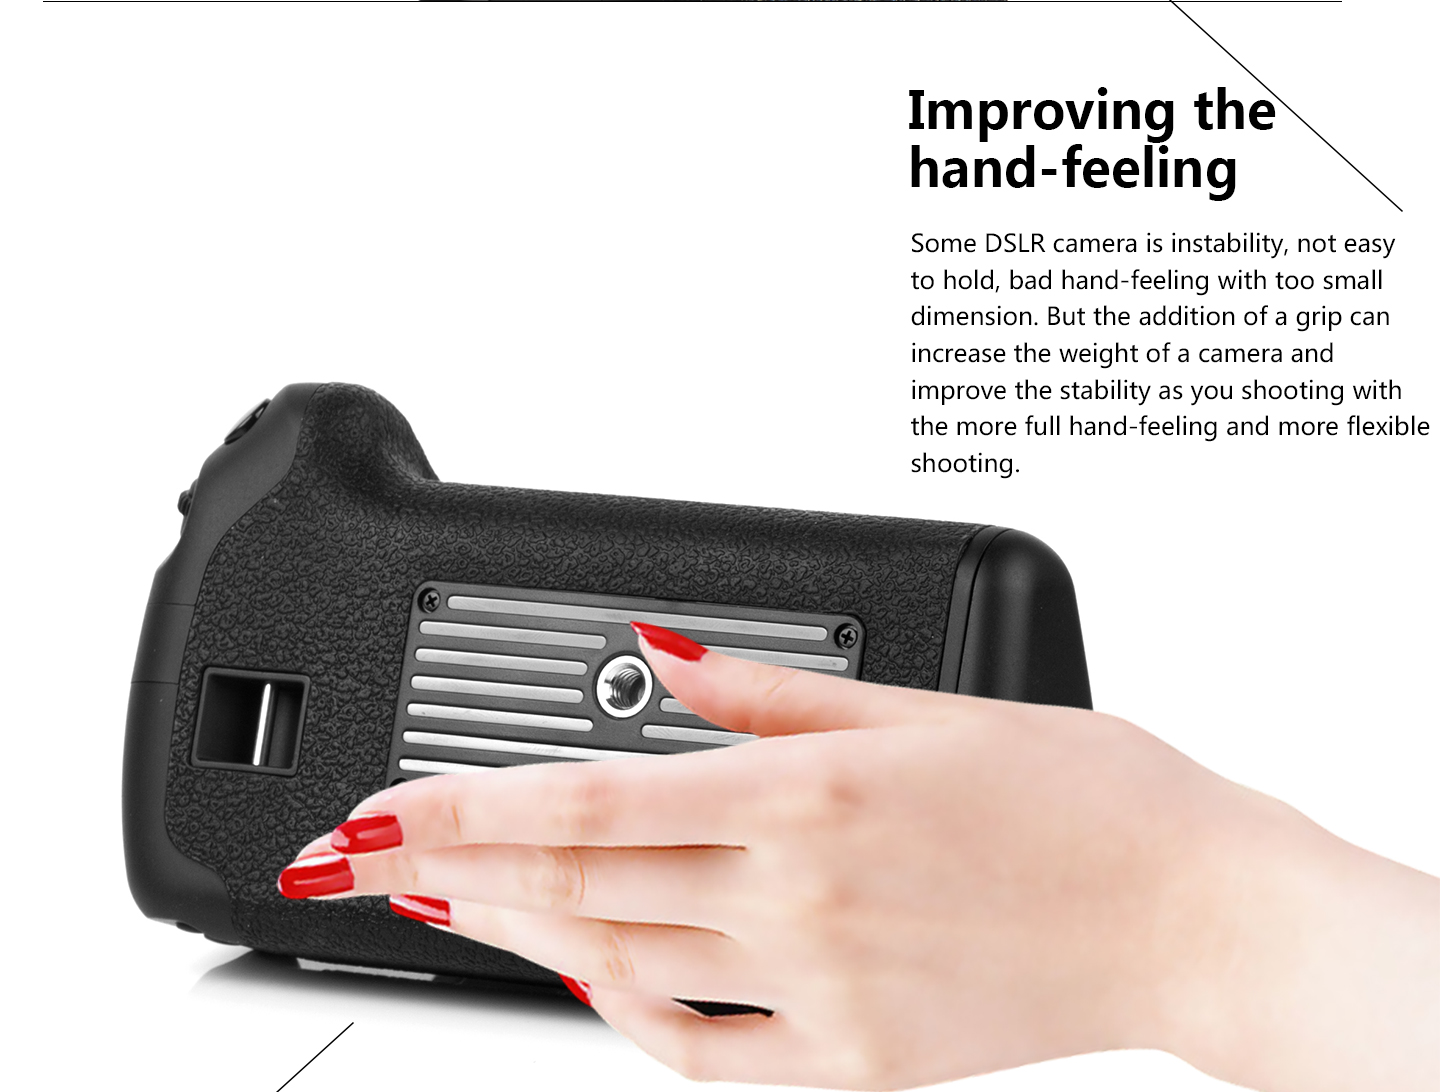 Improving the hand-feeling